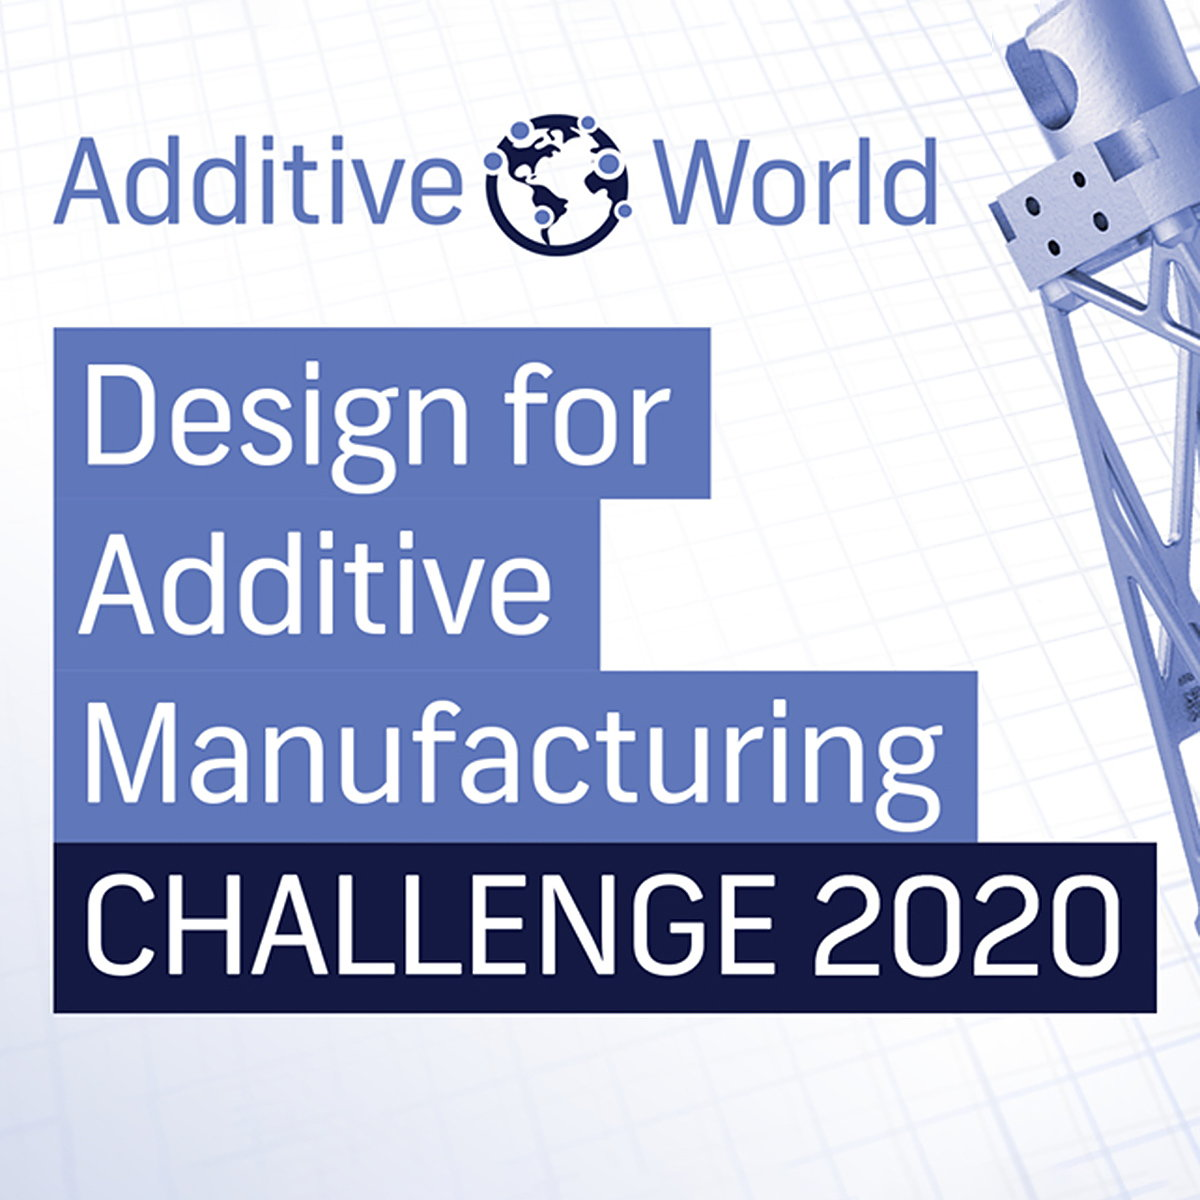 Additive Industries Design for Additive Manufacturing Challenge 2020